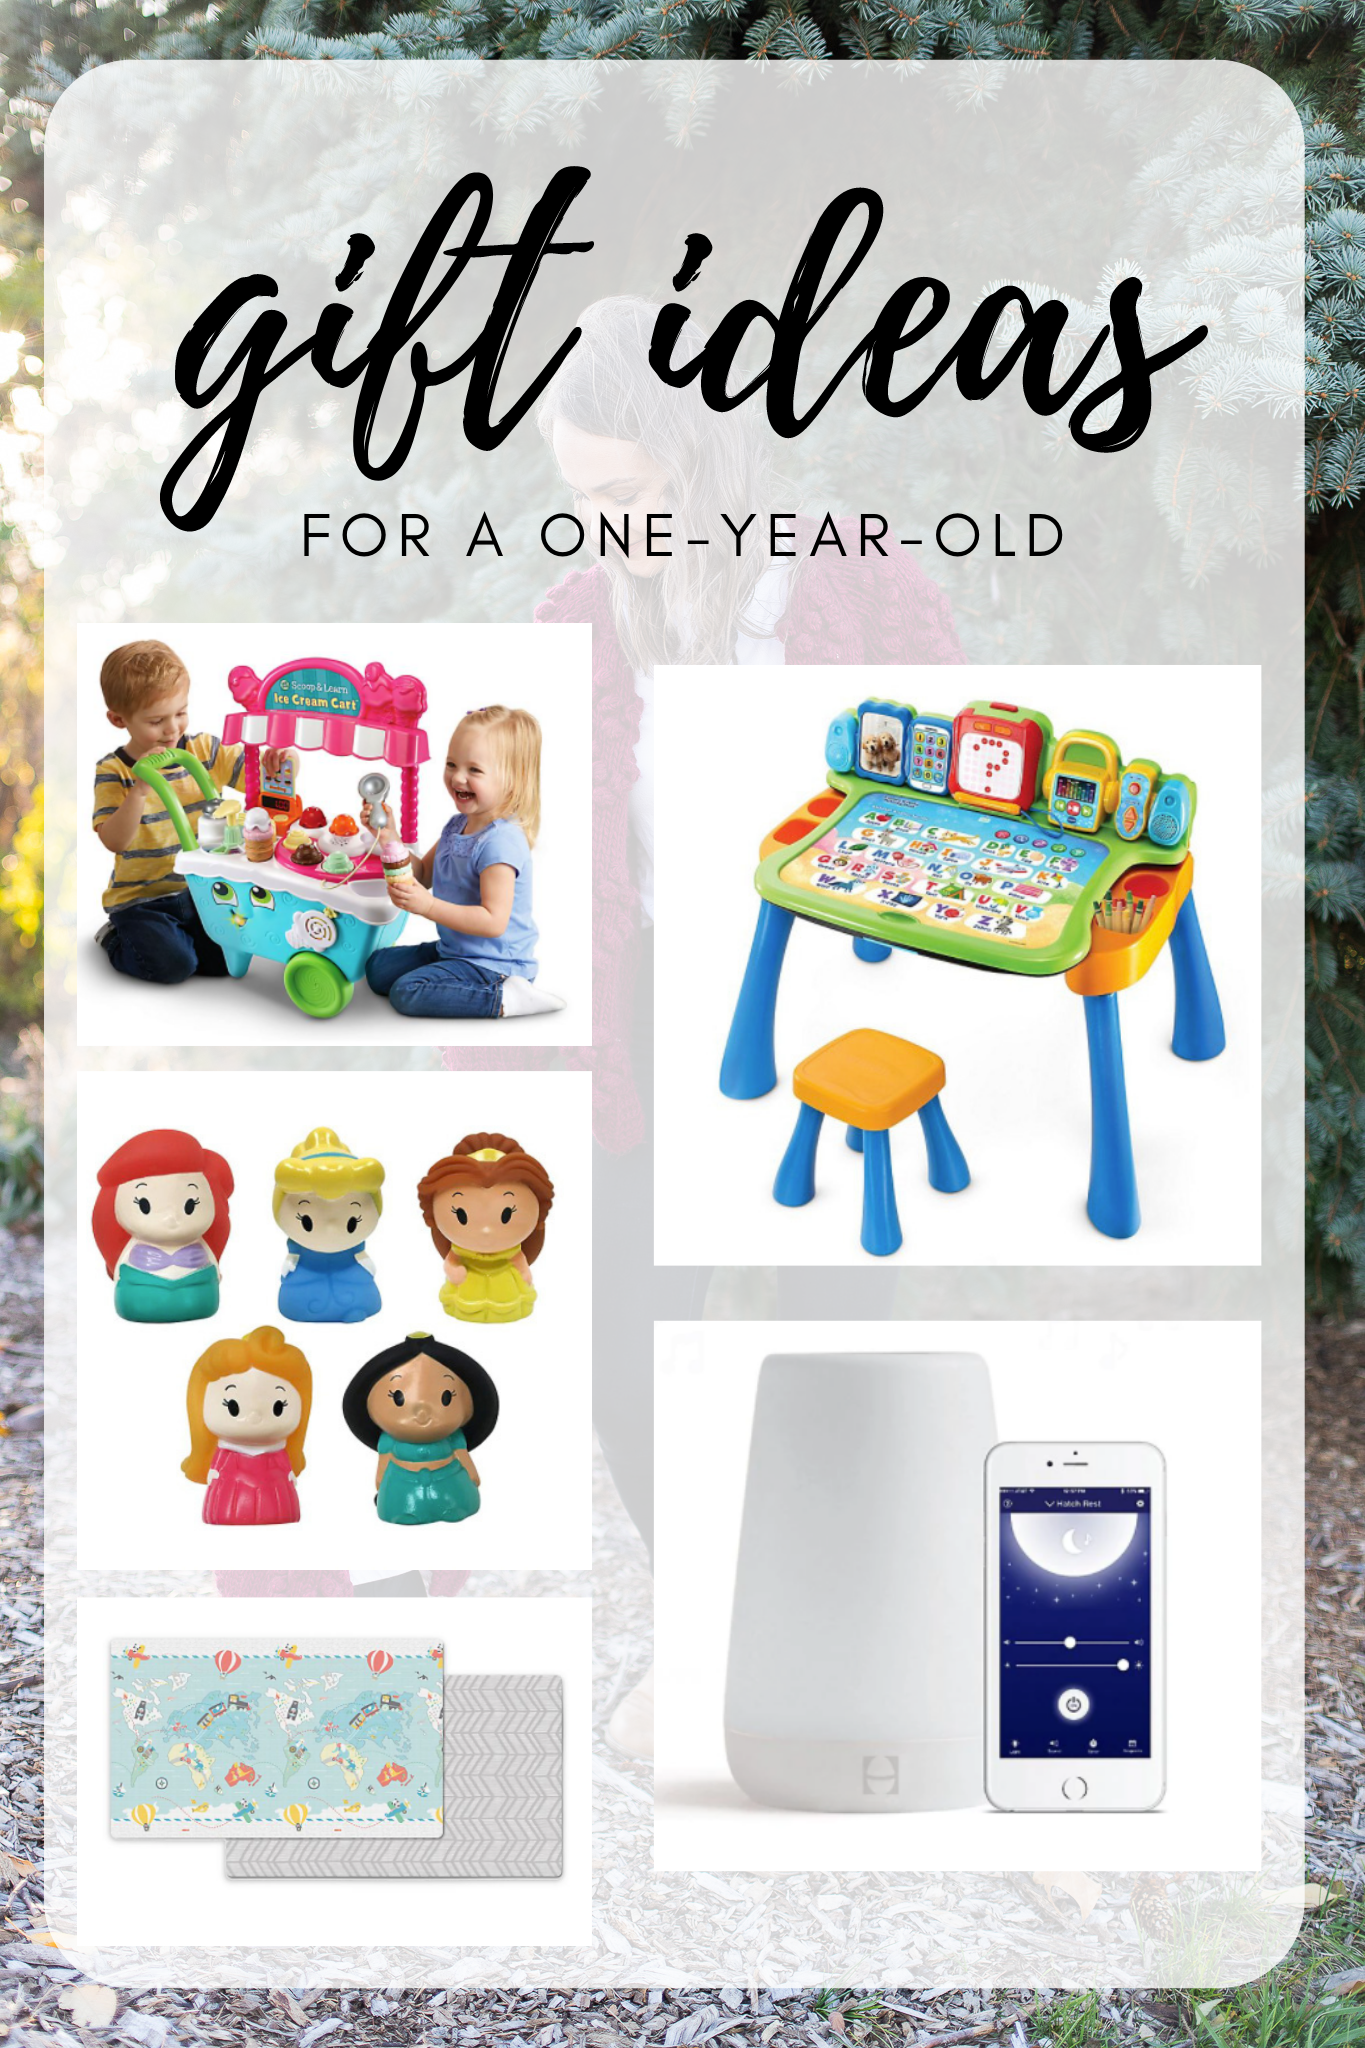 Gift Ideas for a One-Year-Old